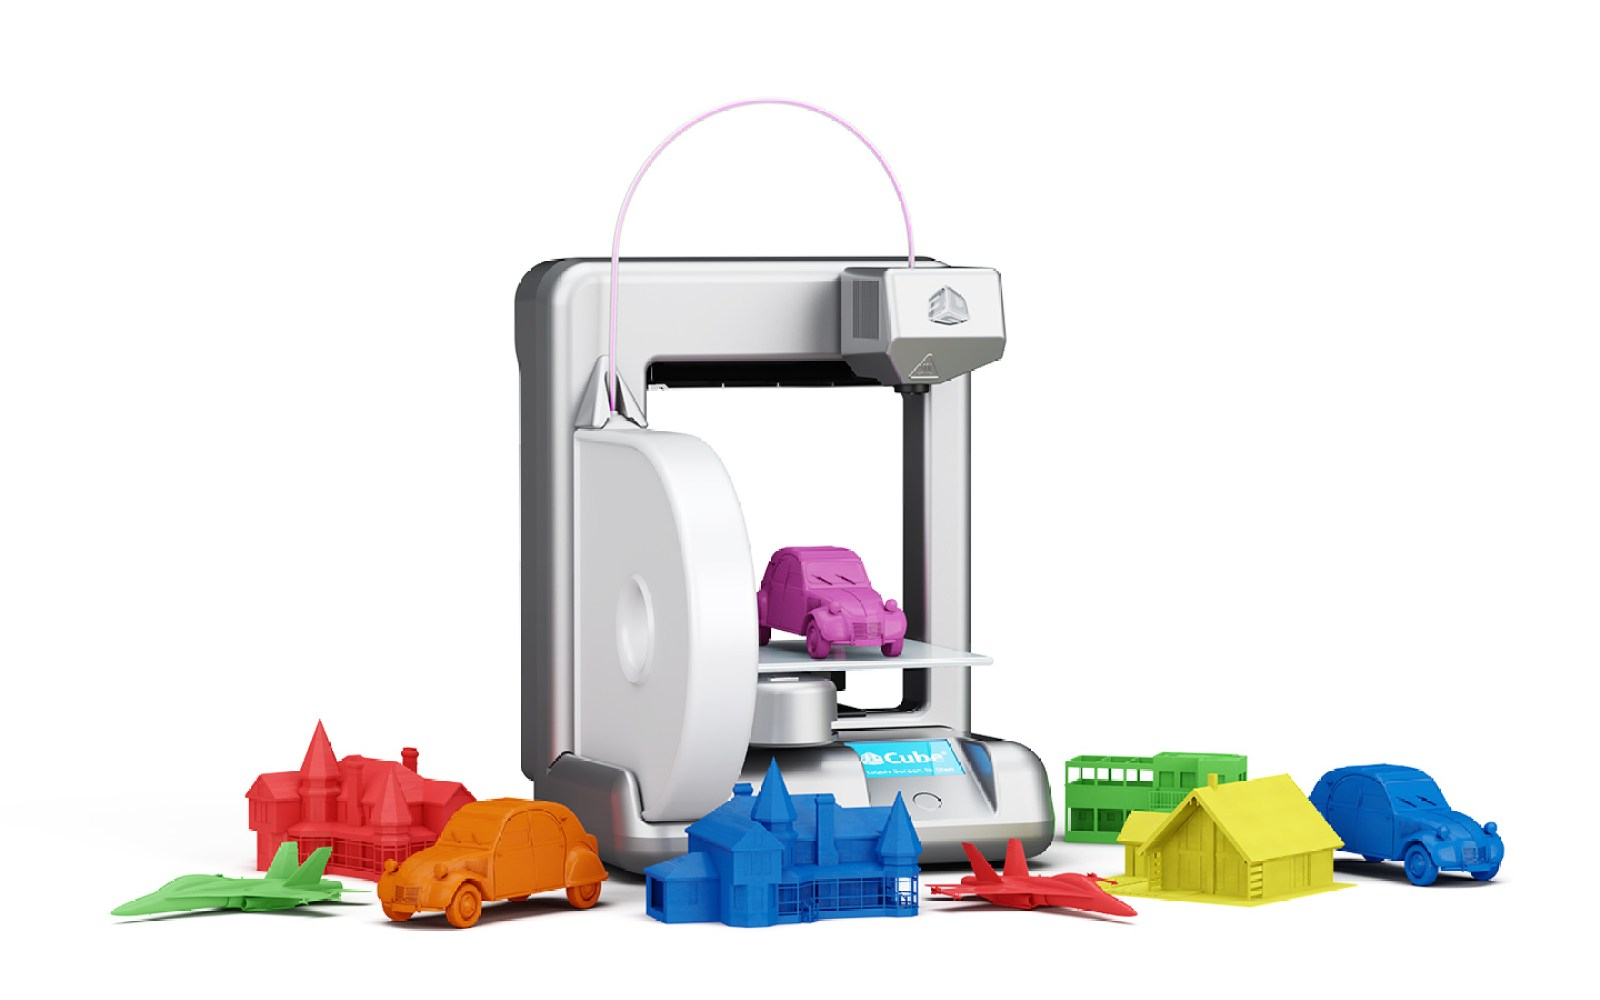 3DSystems Cube Personal 3D Printer (2nd Gen) in Silver: $1000 shipped (Reg. $1300)